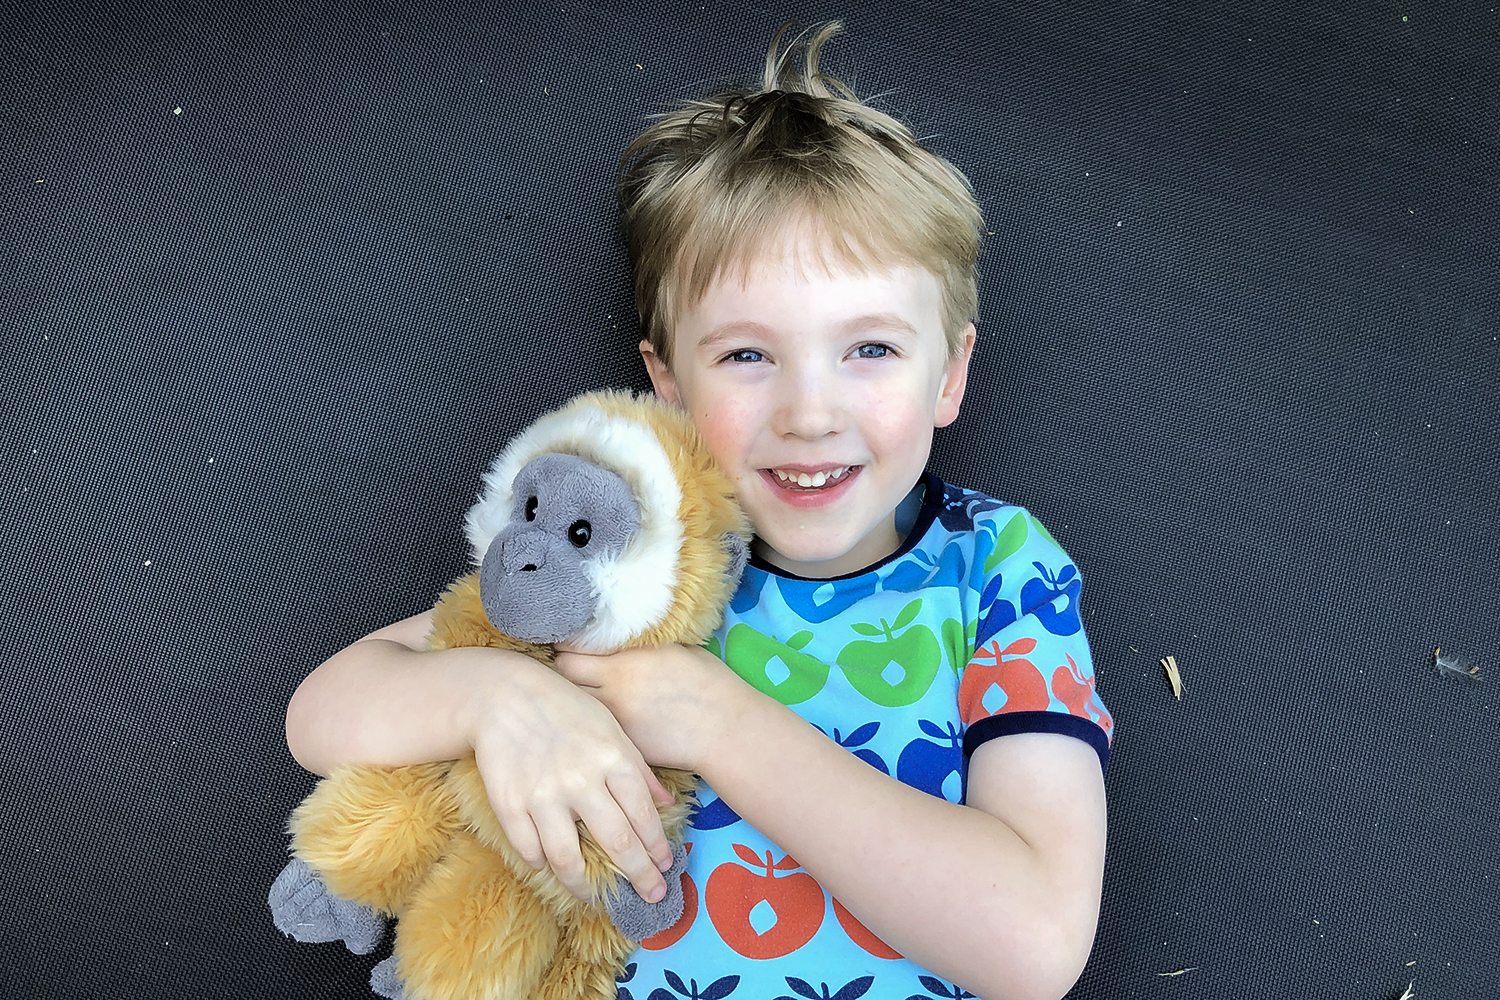 Gabe lying on the trampoline with his cuddly monkey